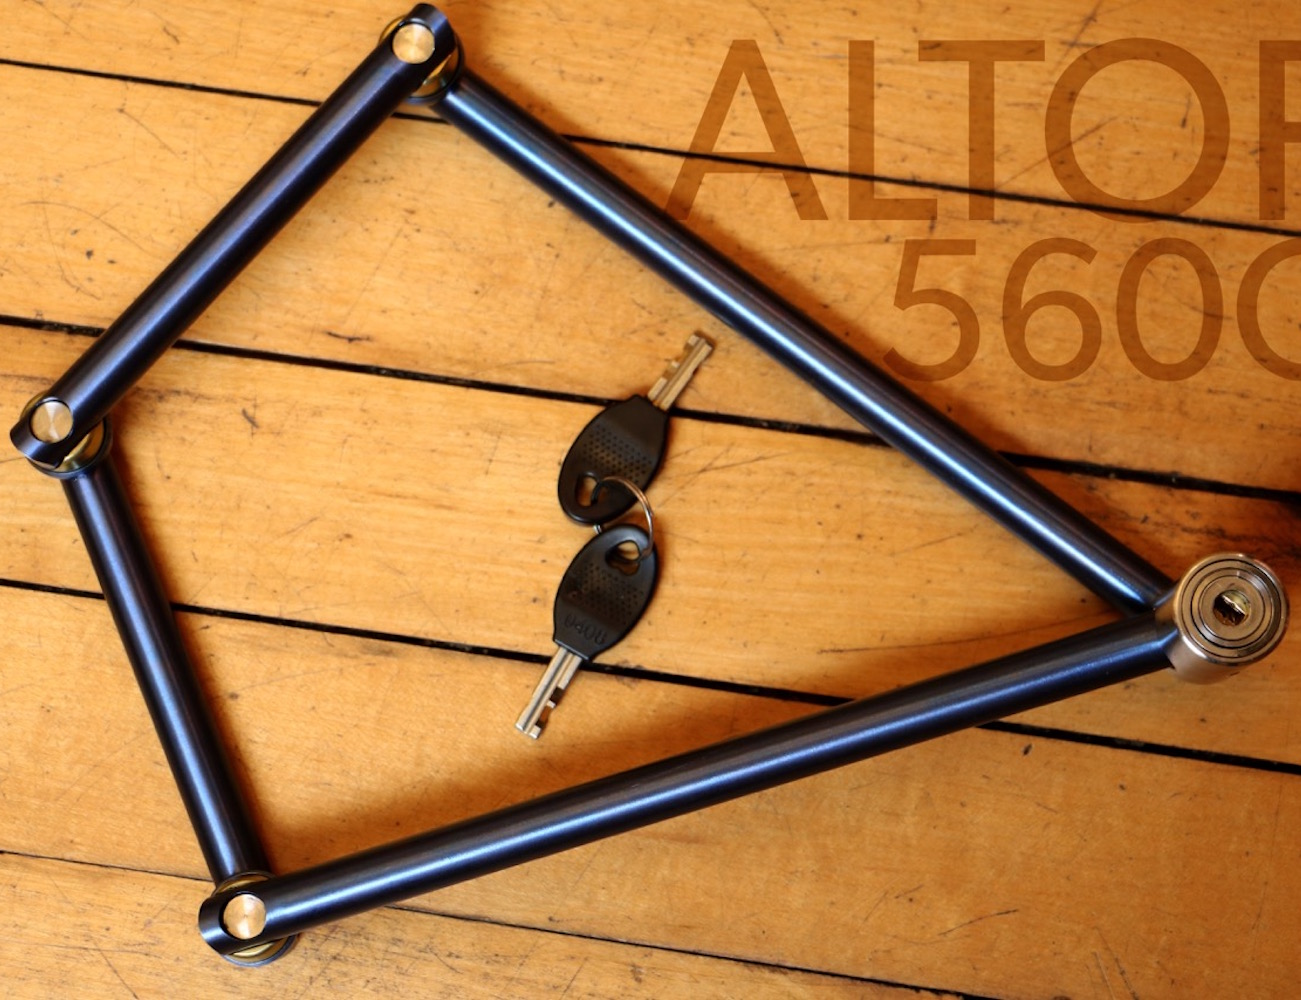 560g Bike Lock By Altor 187 Gadget Flow